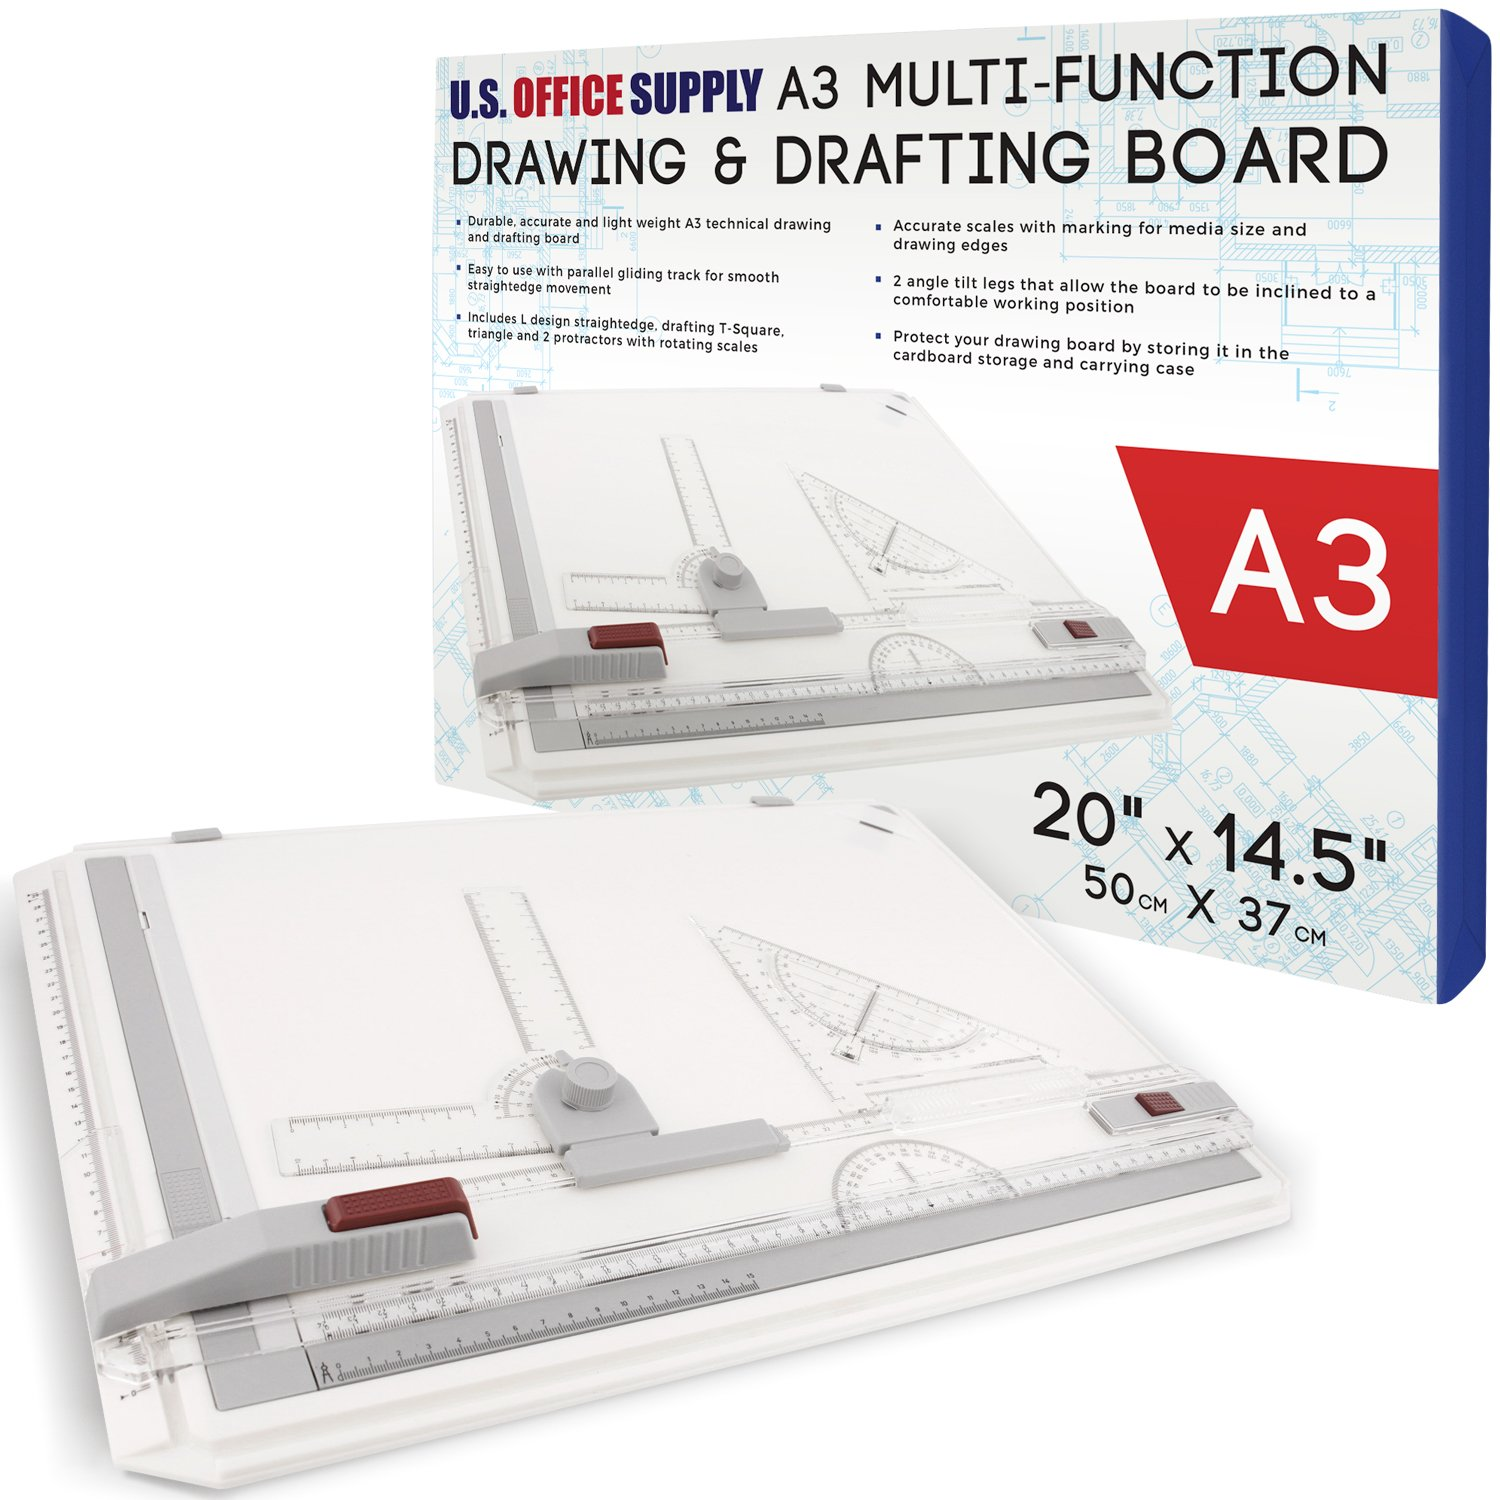 office drawing tools. Amazon.com : U.S. Office Supply 20 Inch X 14.5 (A3) Multi-Functional Drawing Board Set With Assorted \u0026 Drafting Tools Products